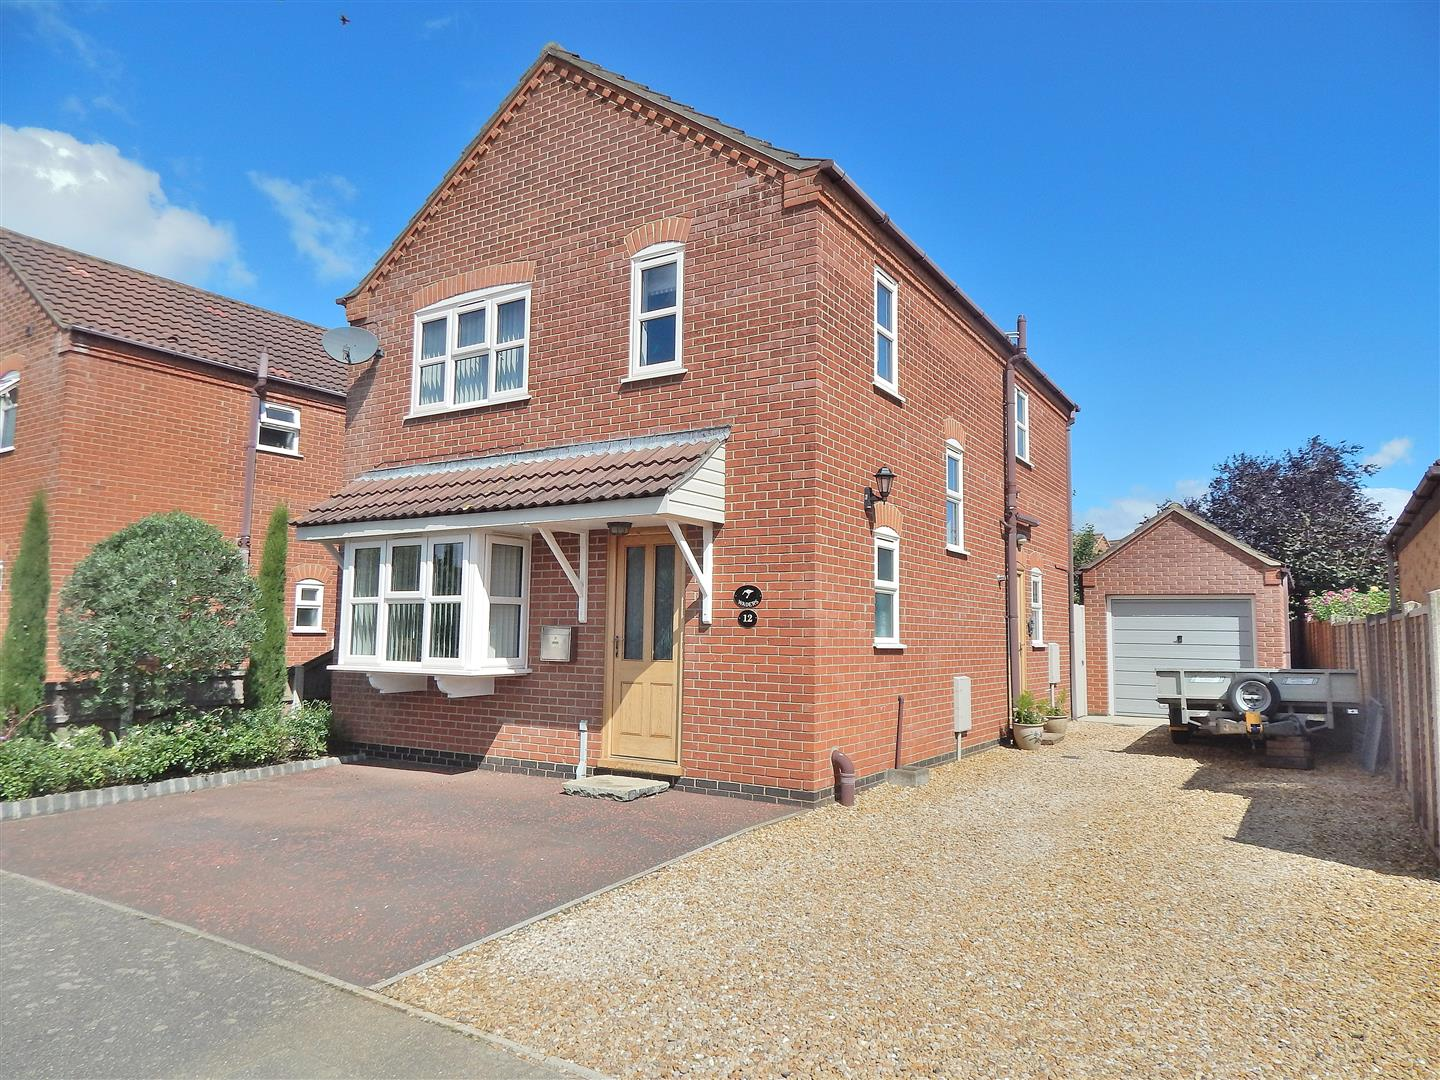 4 bed detached house for sale in James Jackson Road, King's Lynn - Property Image 1